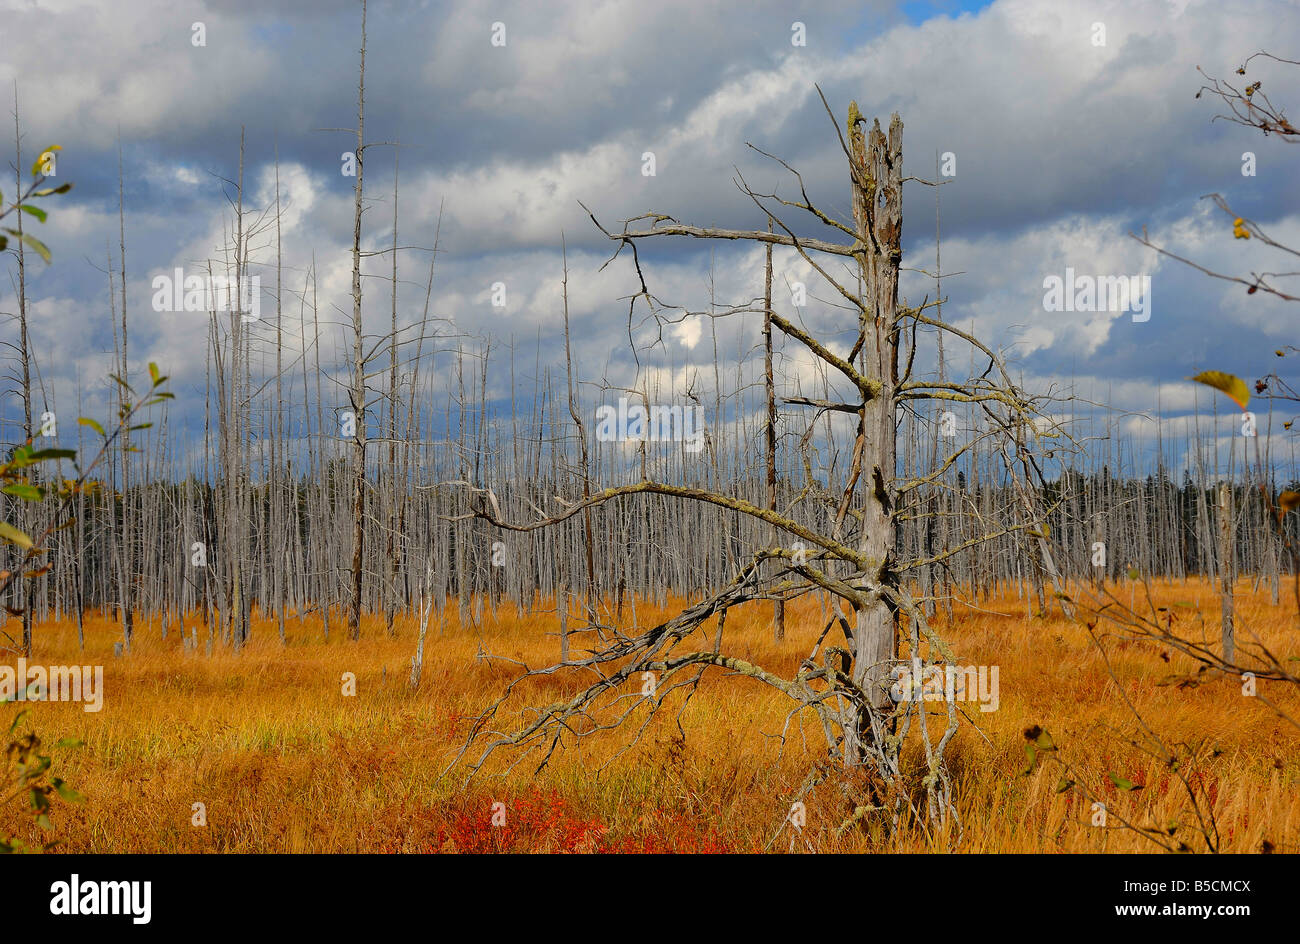 Tree trunks left after a forest fire, near Parry Sound in Ontario, Canada. Horizontal format - Stock Image